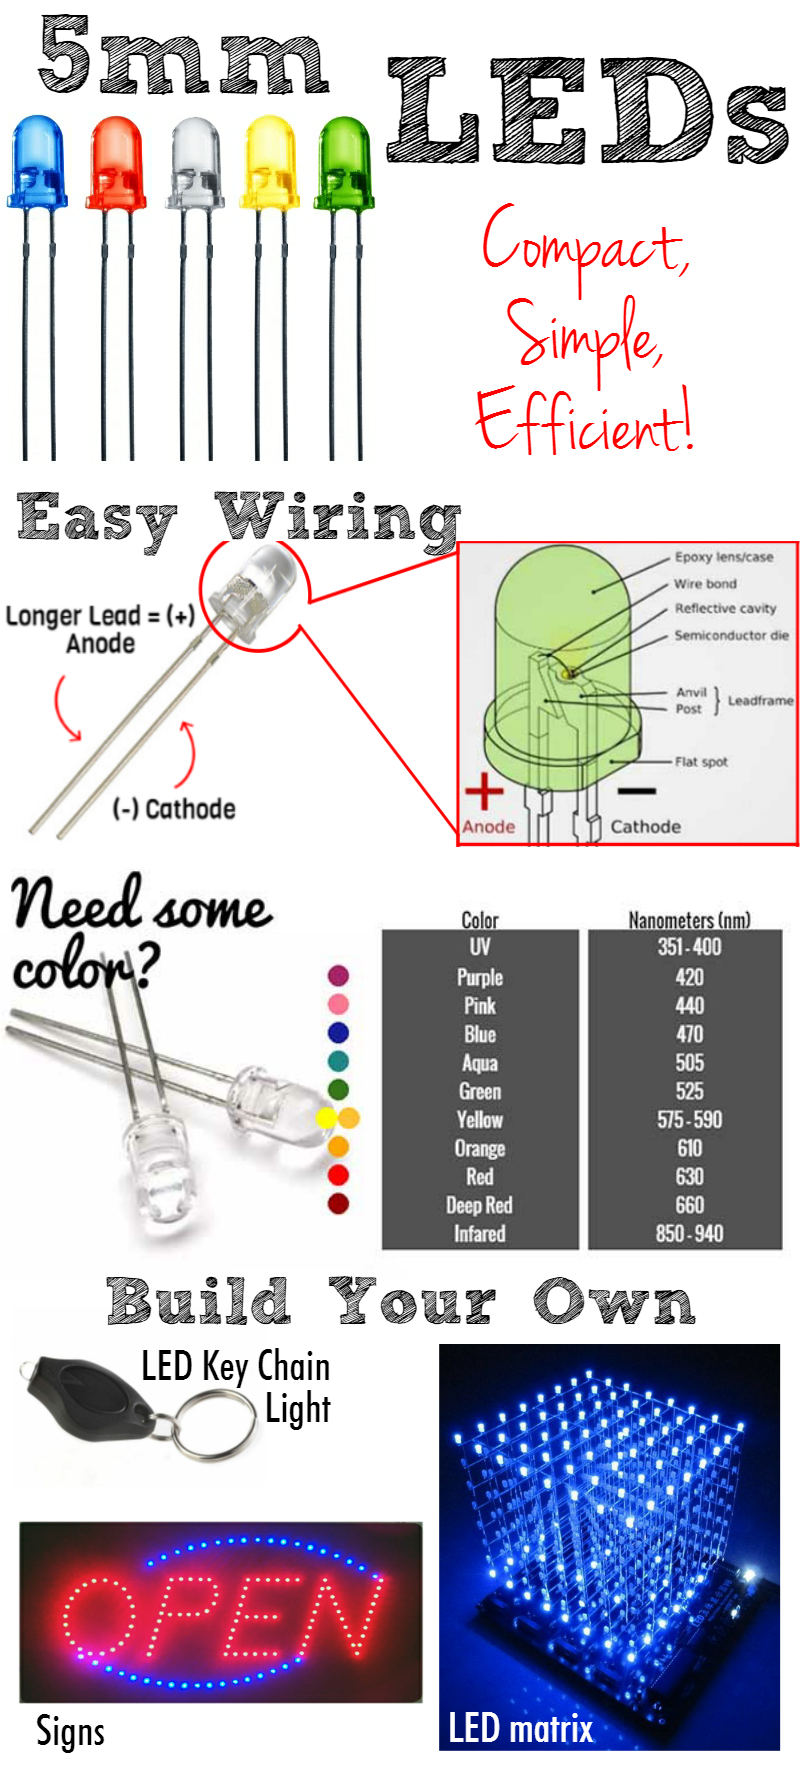 how does a 5mm led work the trick behind powering finding the right resistor size and. Black Bedroom Furniture Sets. Home Design Ideas